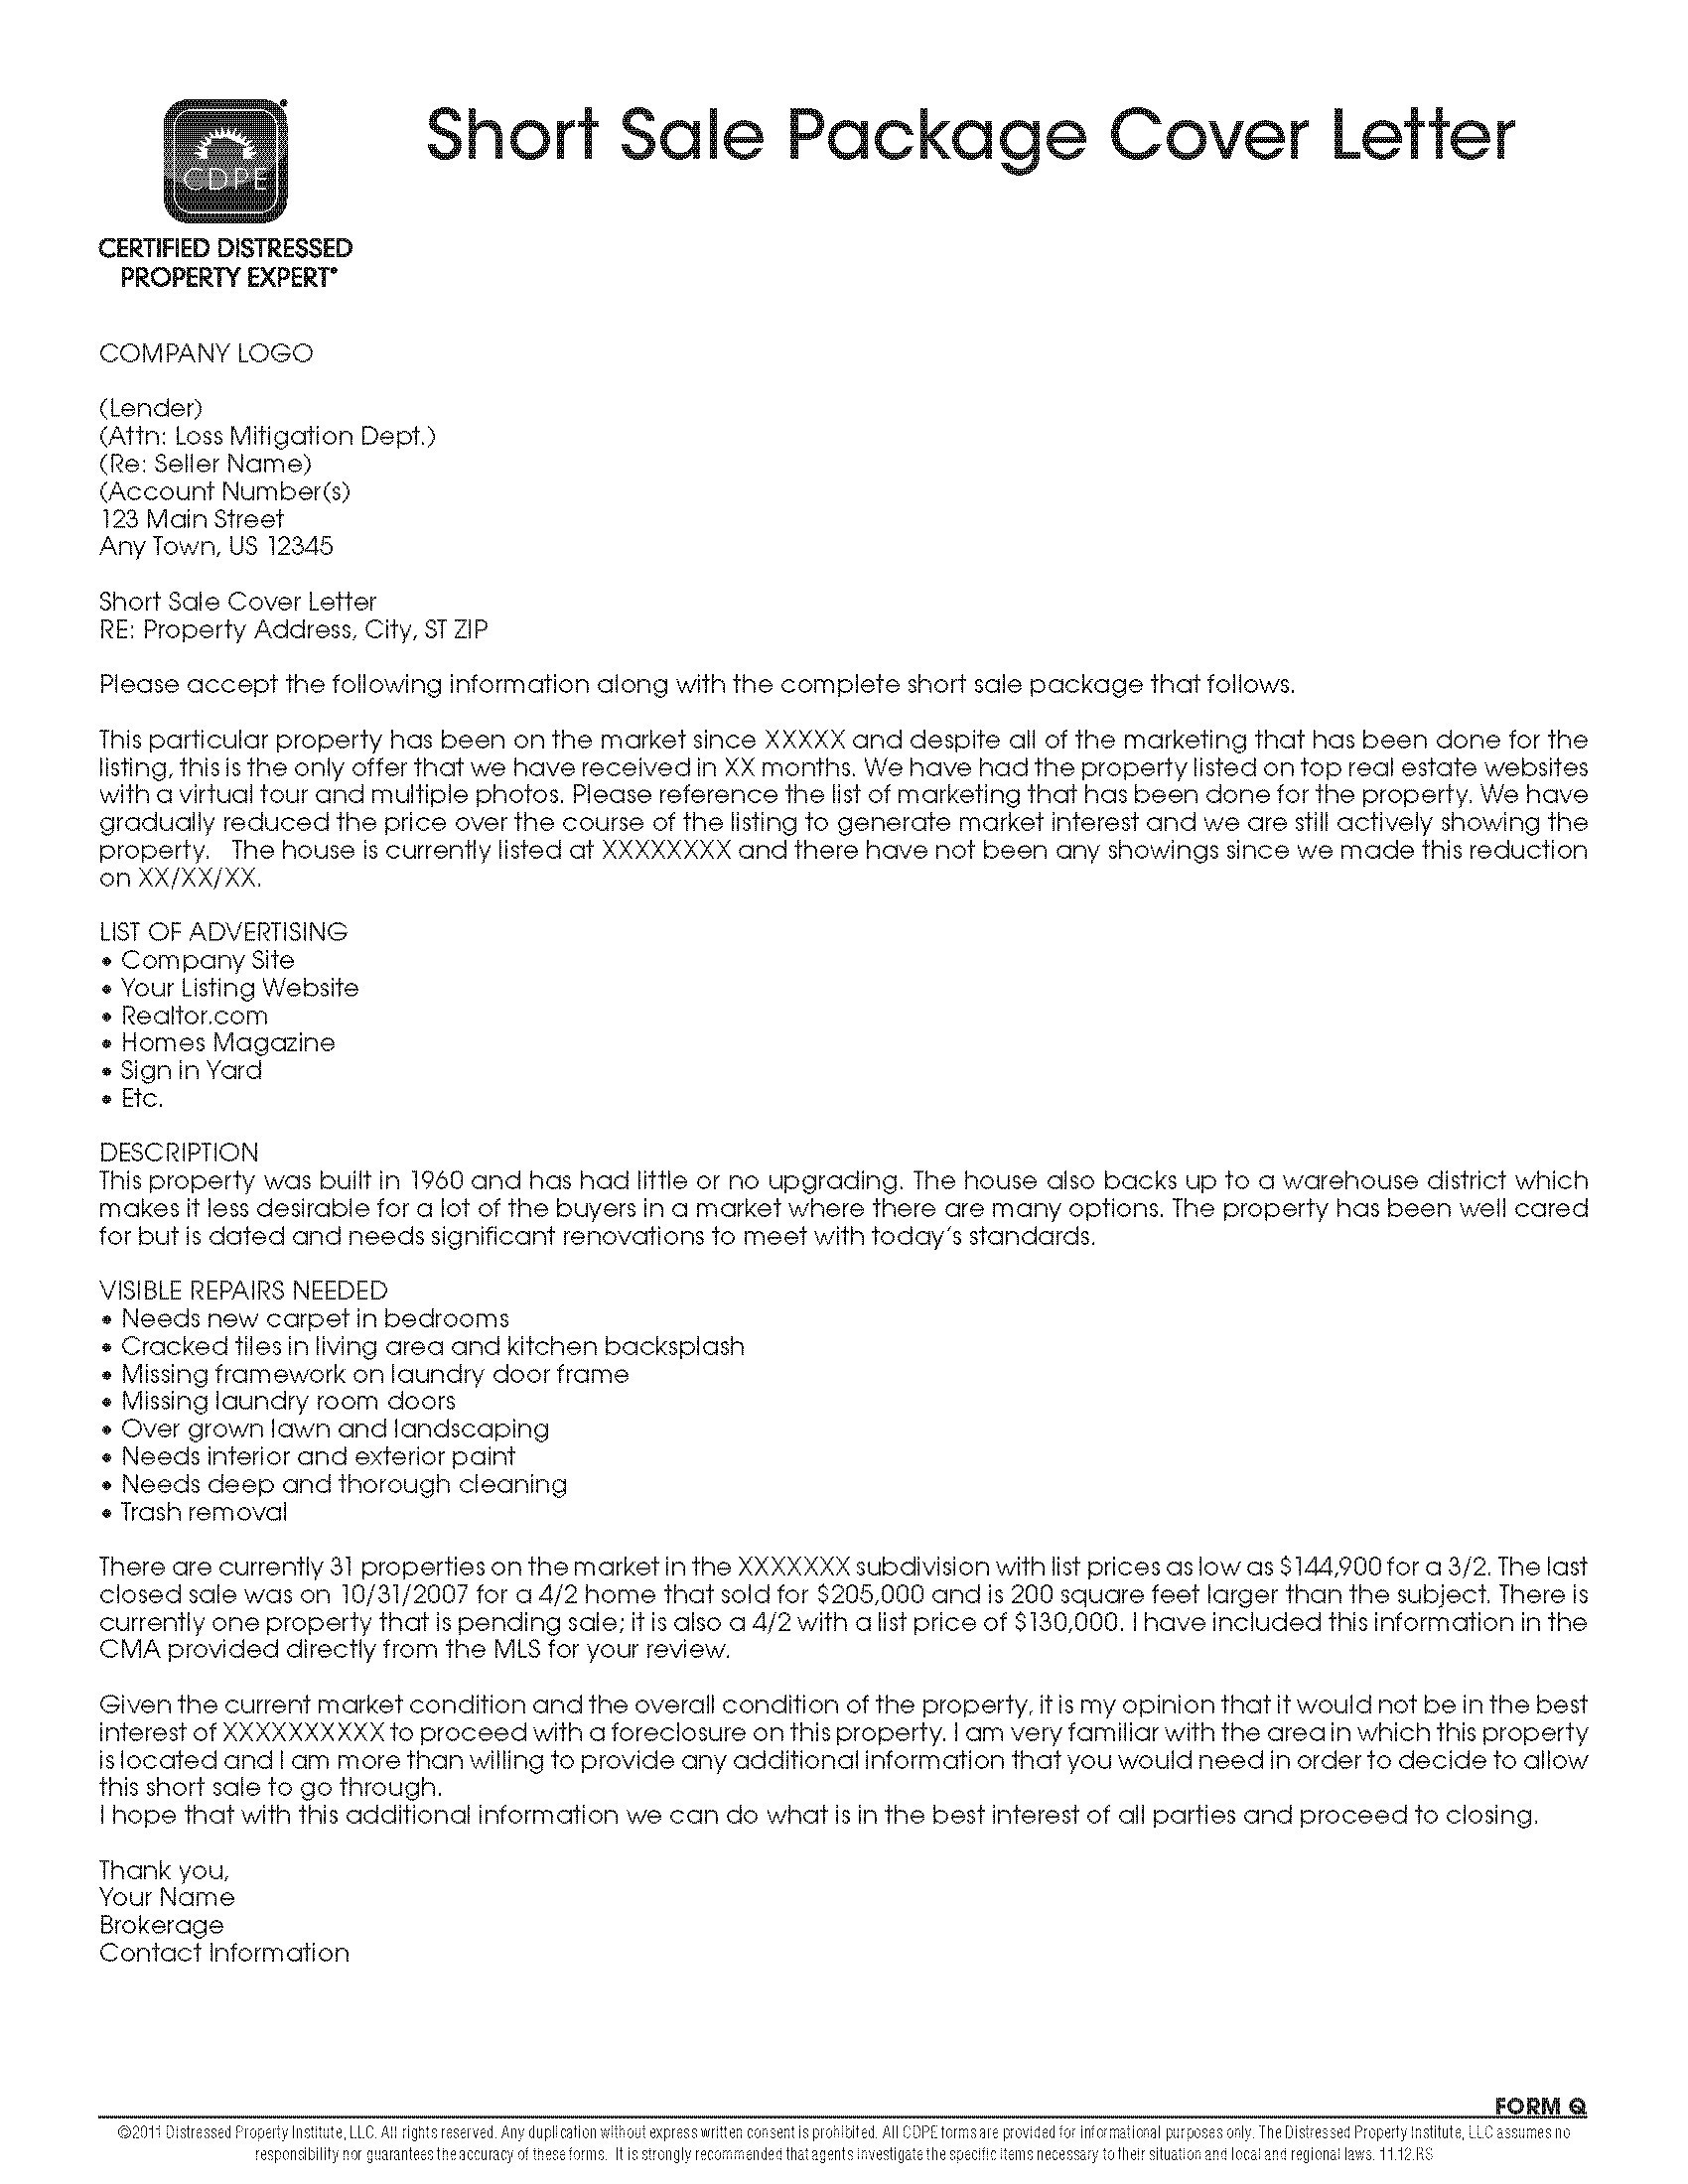 Letter to Seller From Buyer Template - Unique Corporate Express Templates